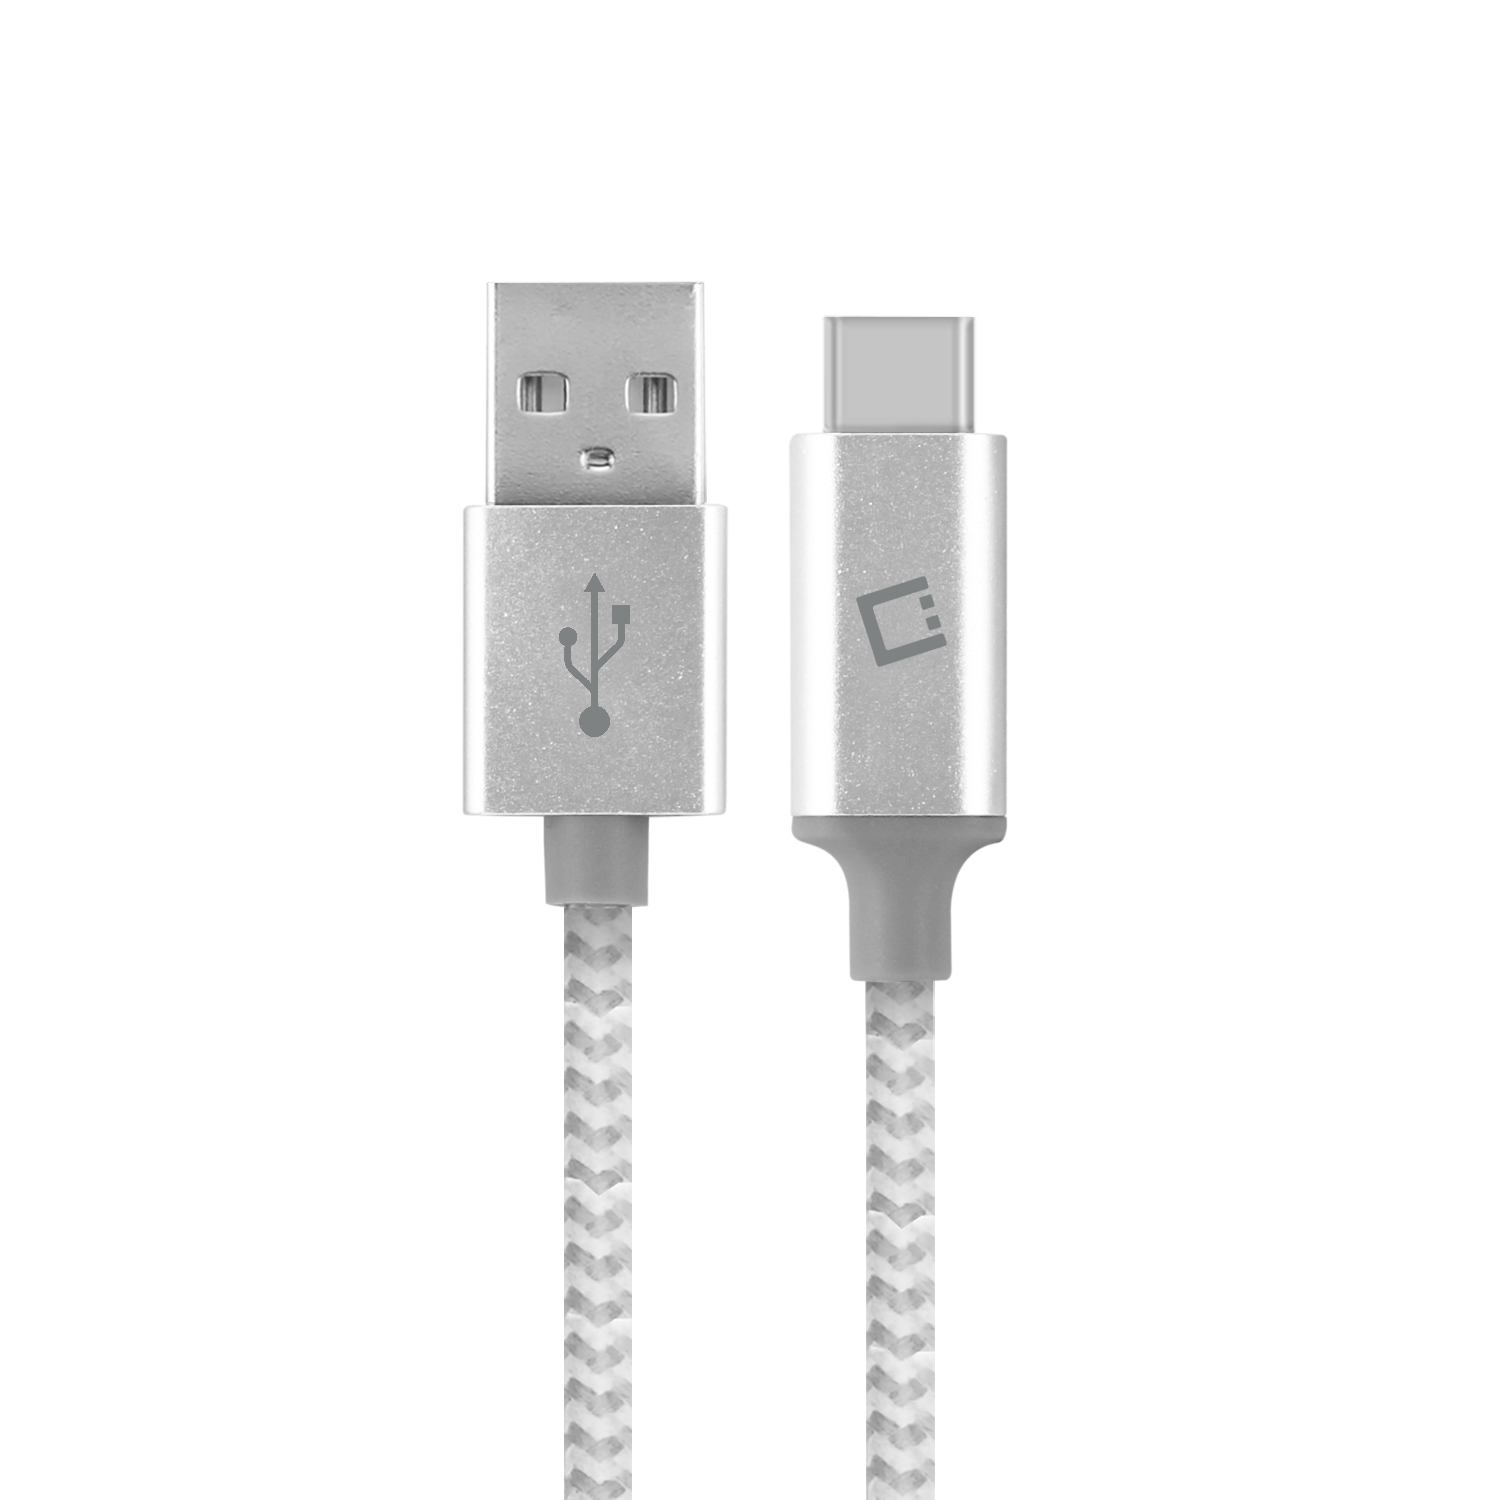 Sony Xperia XA2 Ultra USB Type-C To Type-A Braided Data Power Cable White 4ft Round